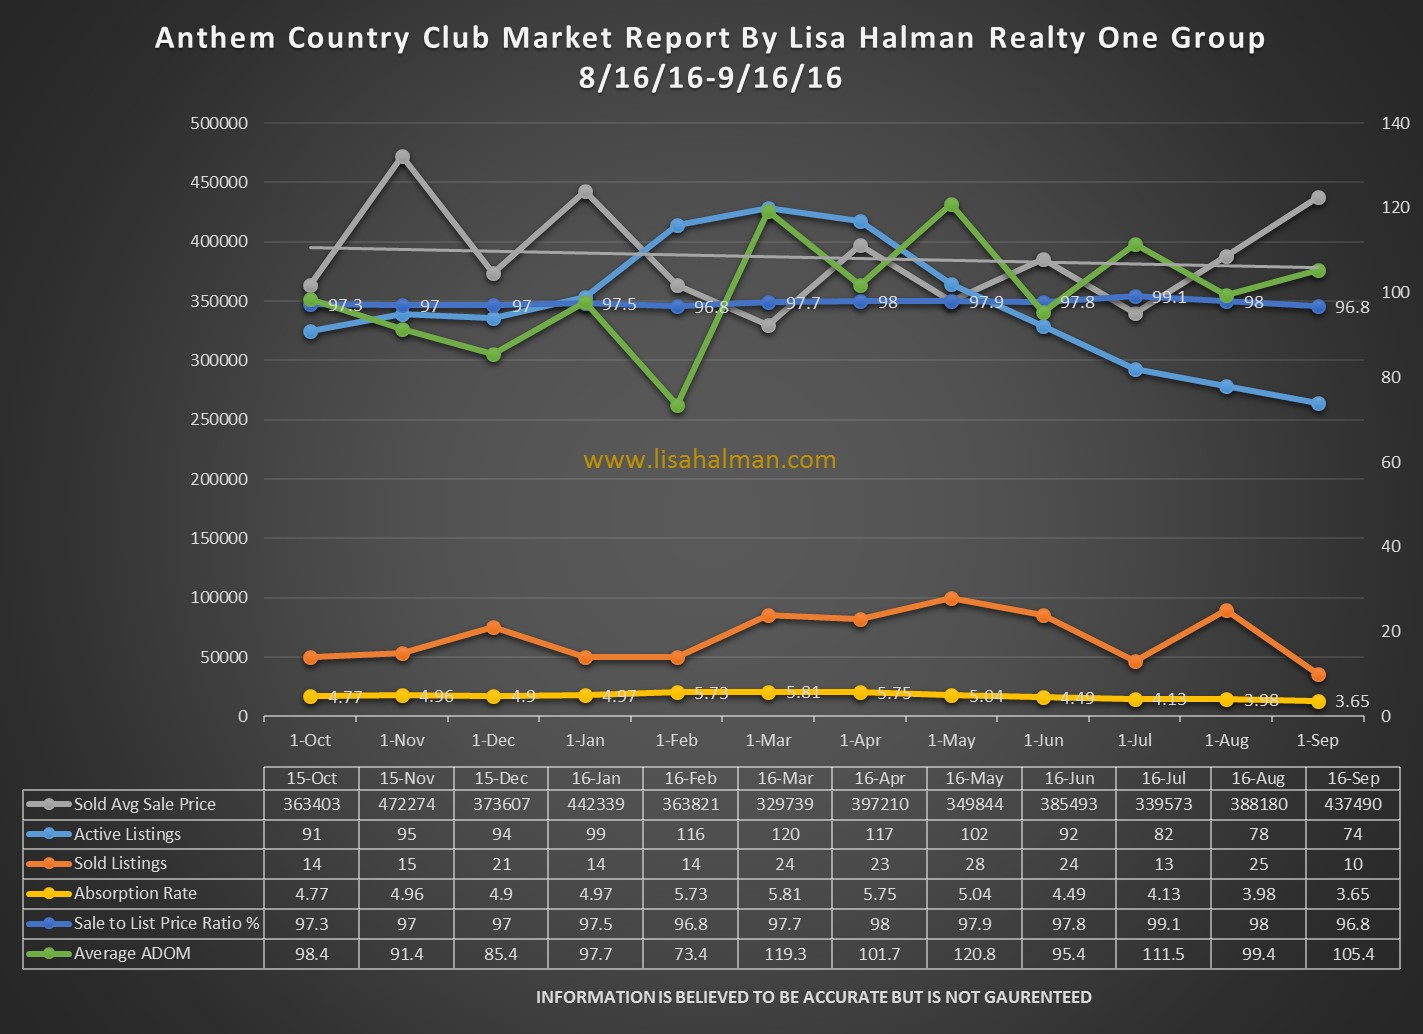 Anthem Country Club Market Report September 2016